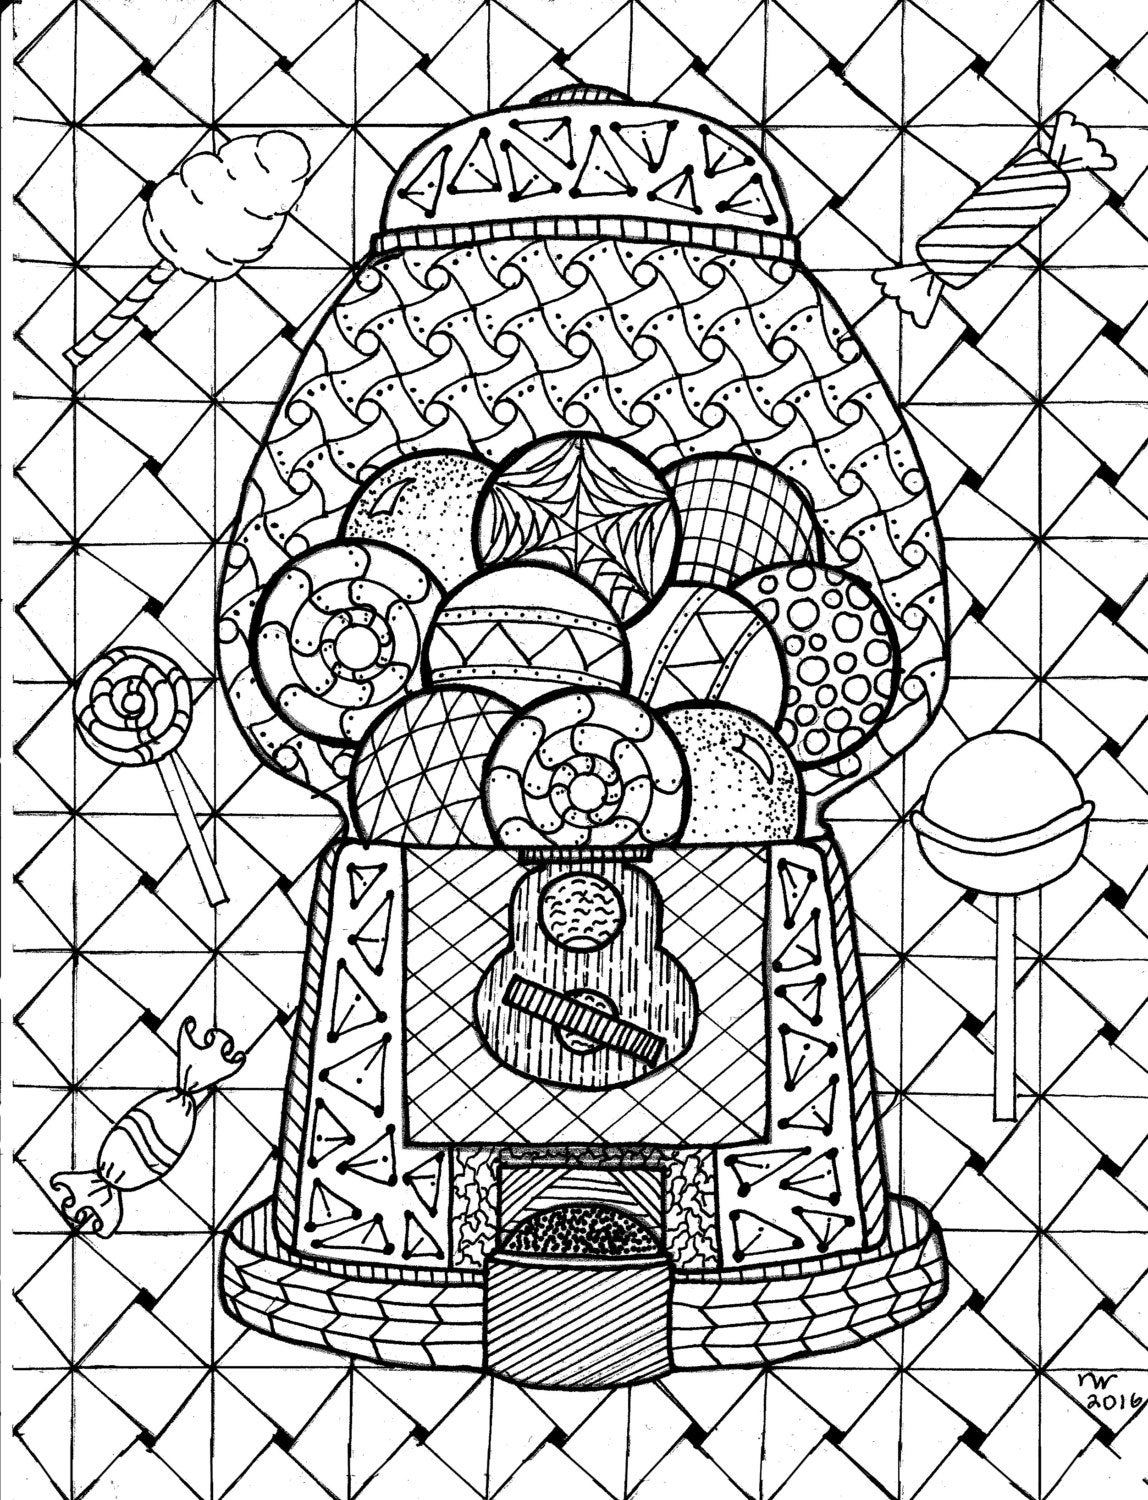 coloring sheet gumball machine coloring page better gum ball machine gumball machine gumball elsa sheet coloring machine coloring page gumball